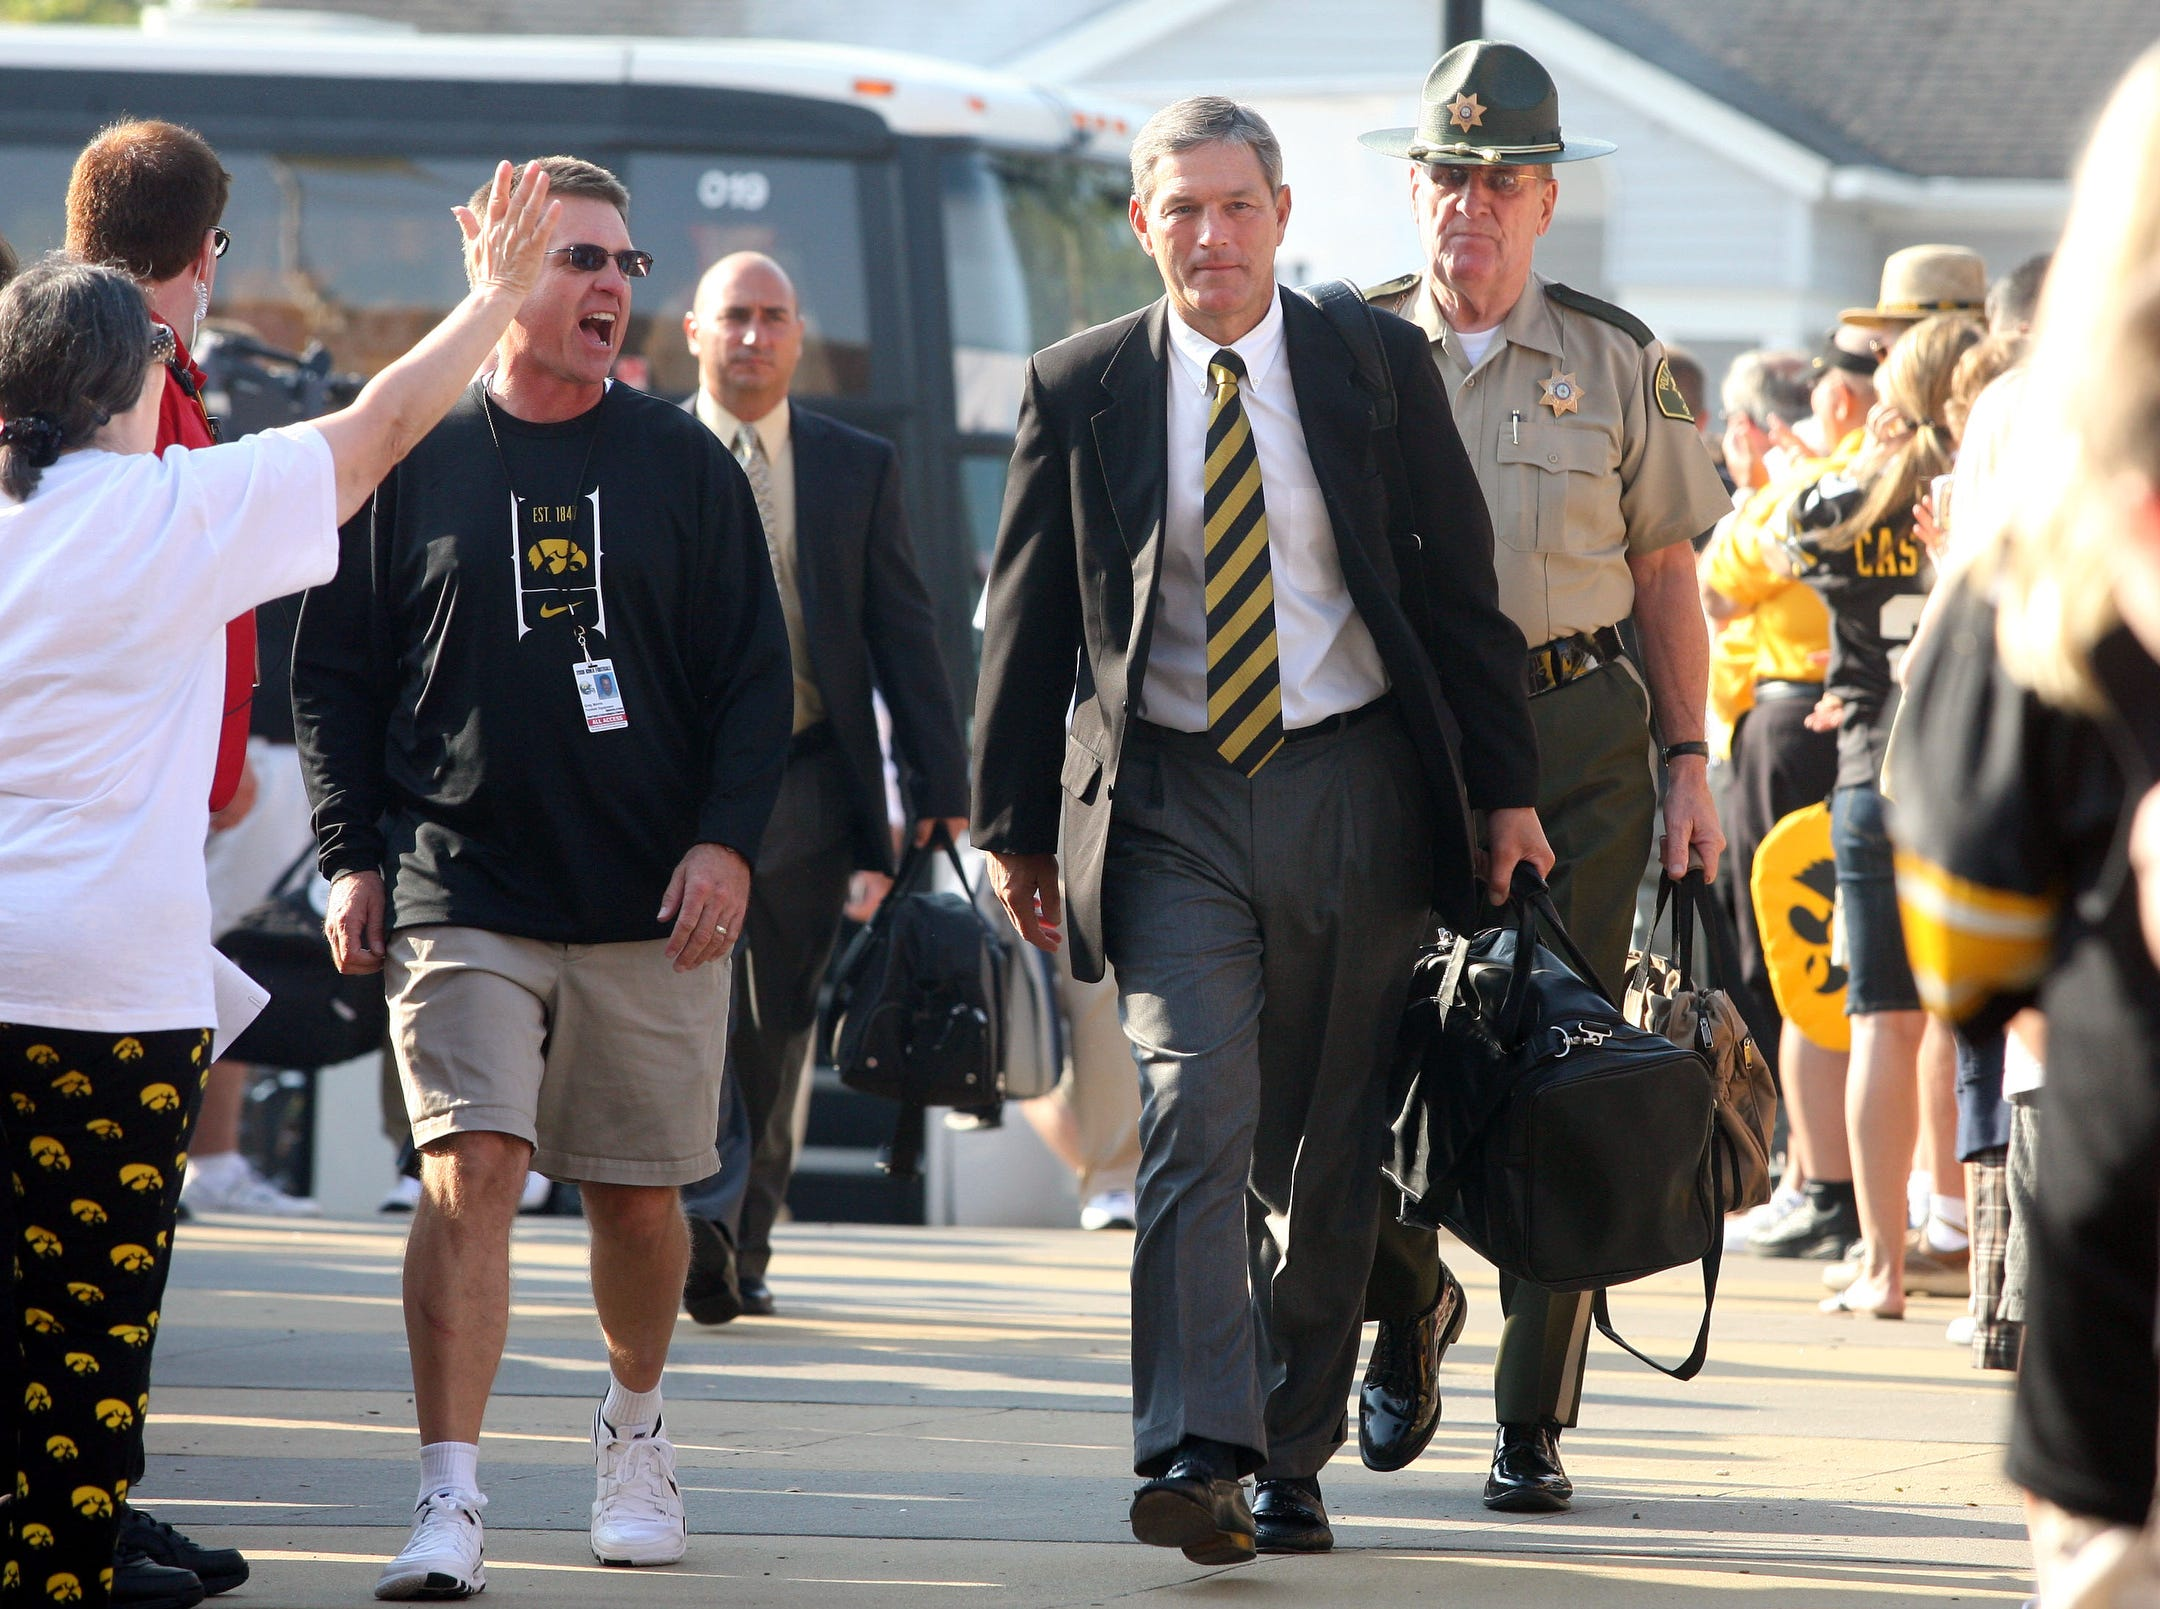 Iowa head coach Kirk Ferentz arrives to fans' cheers before Iowa's football season opener Sept. 5, 2009 against Northern Iowa at Kinnick Stadium.